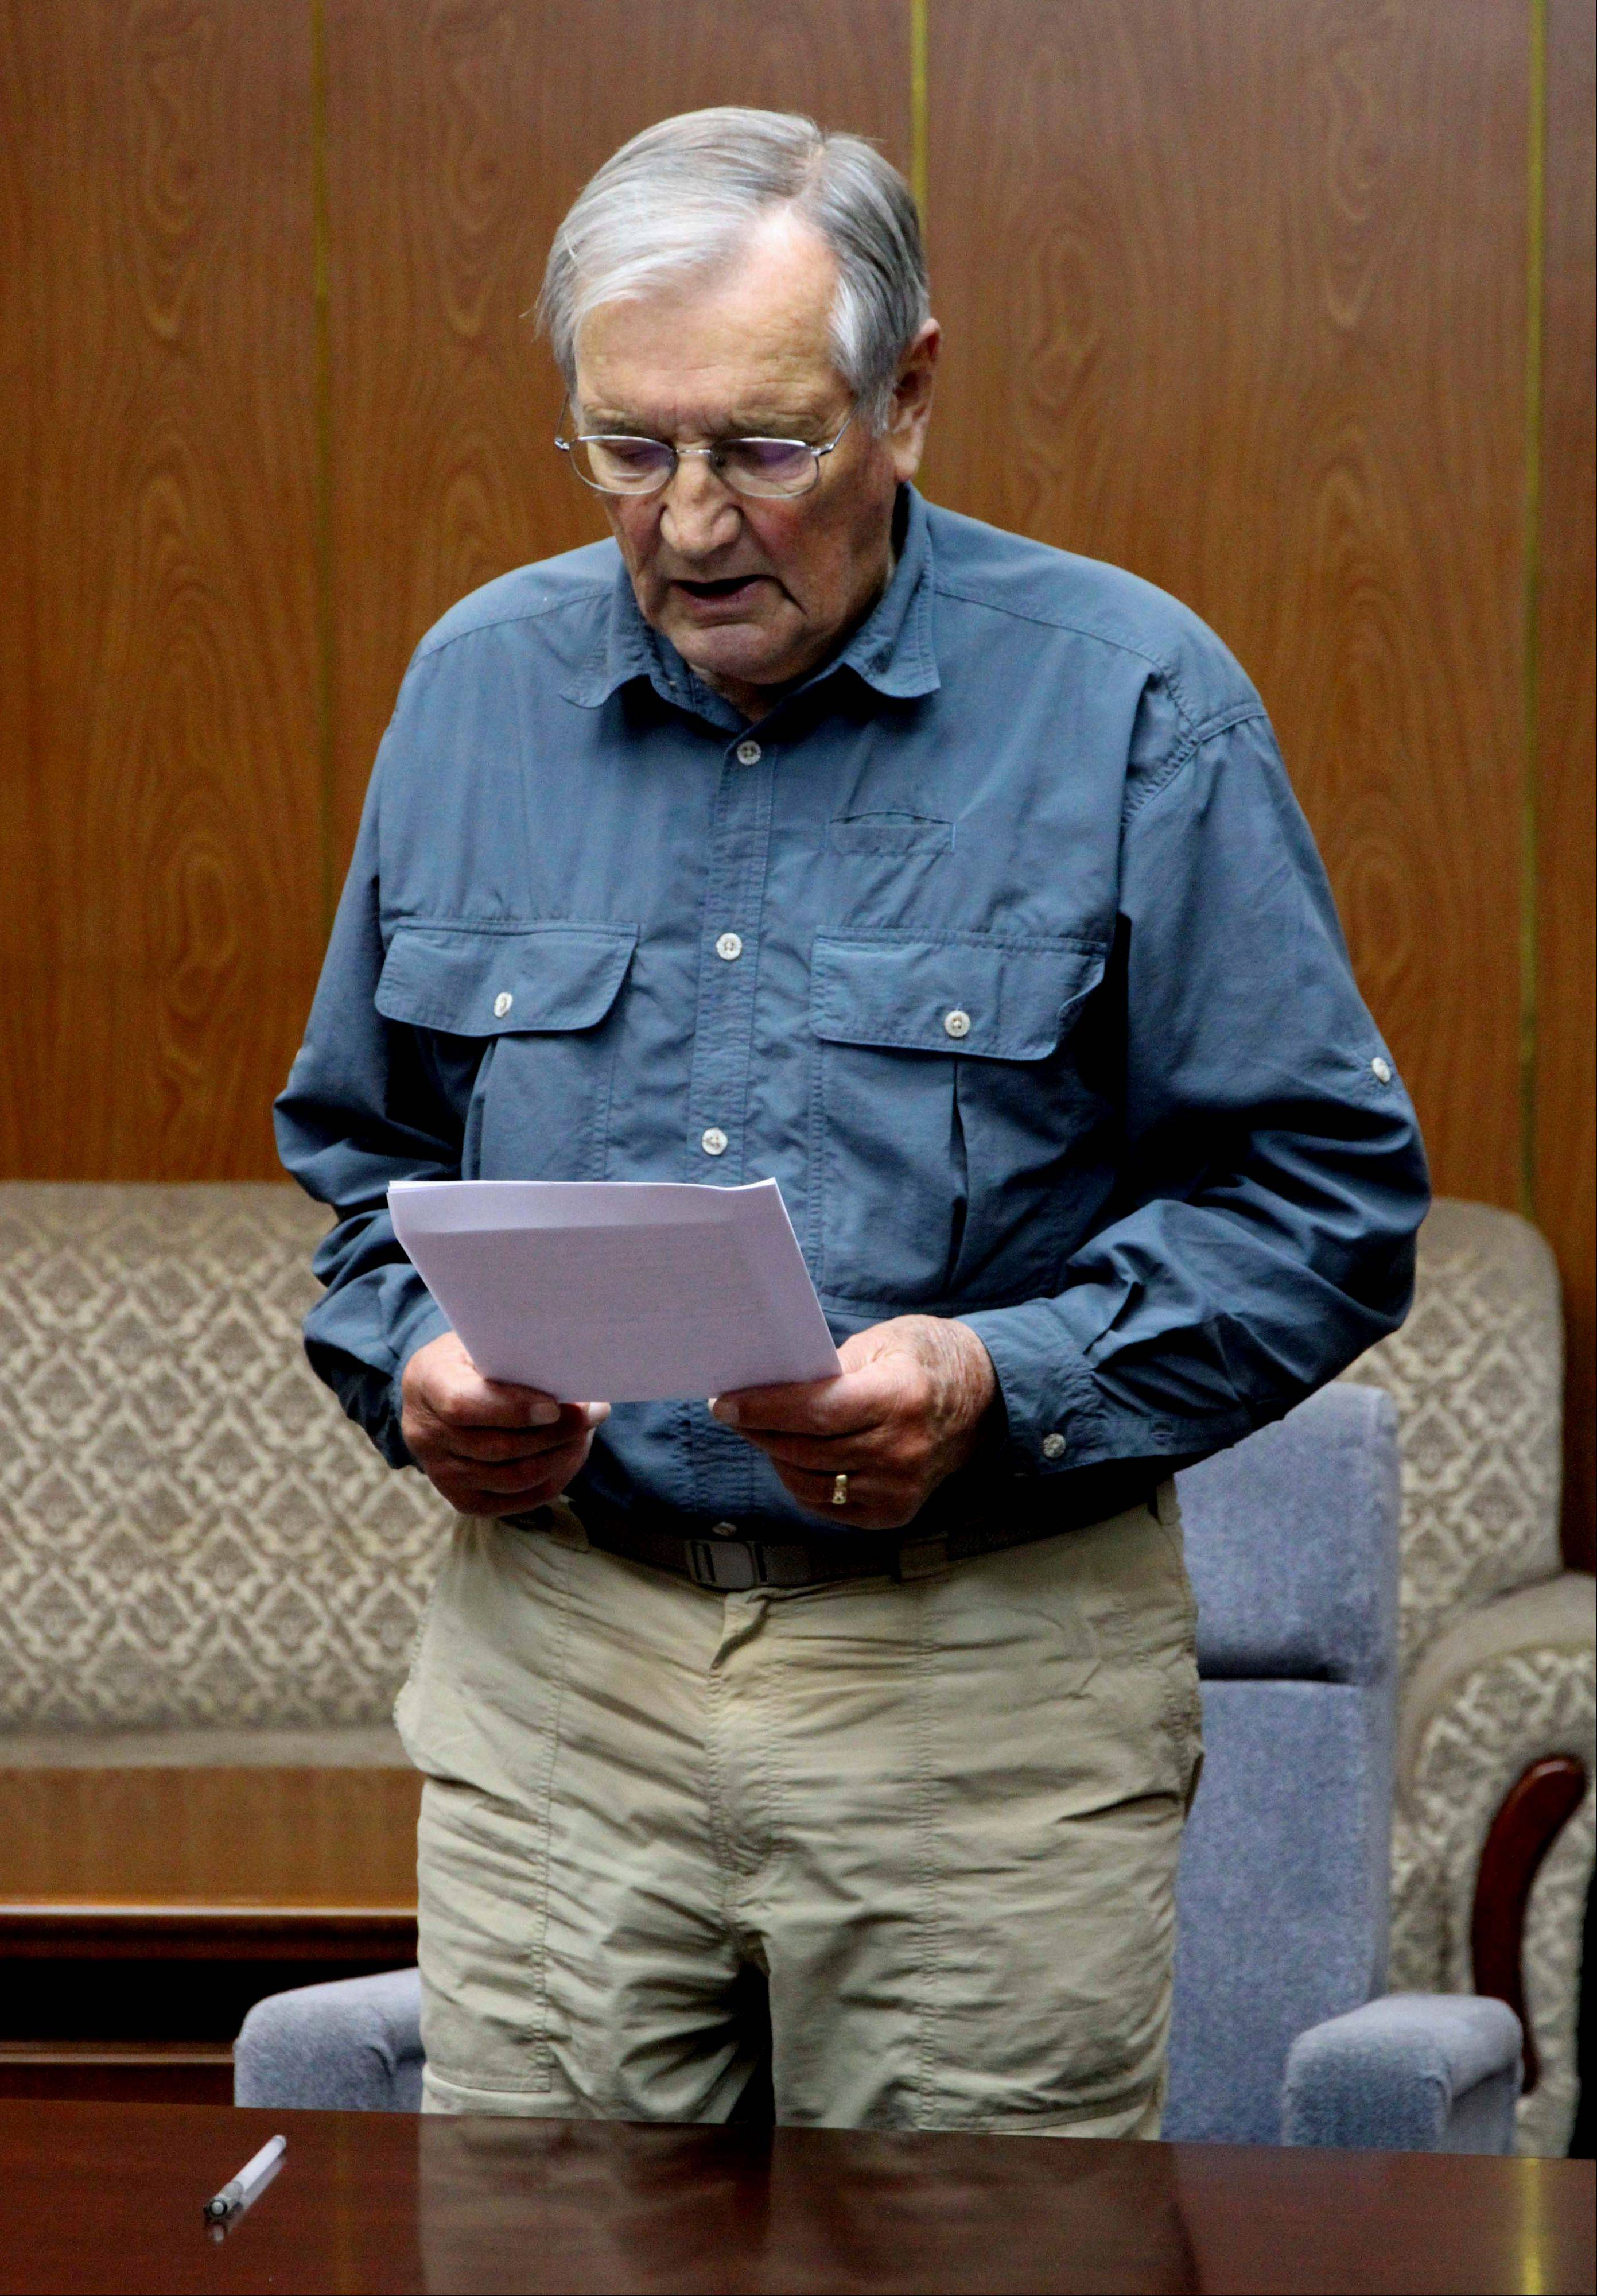 U.S. citizen Merrill Newman, 85, reads a document, which North Korean authorities say was an apology that Newman wrote and read in North Korea.